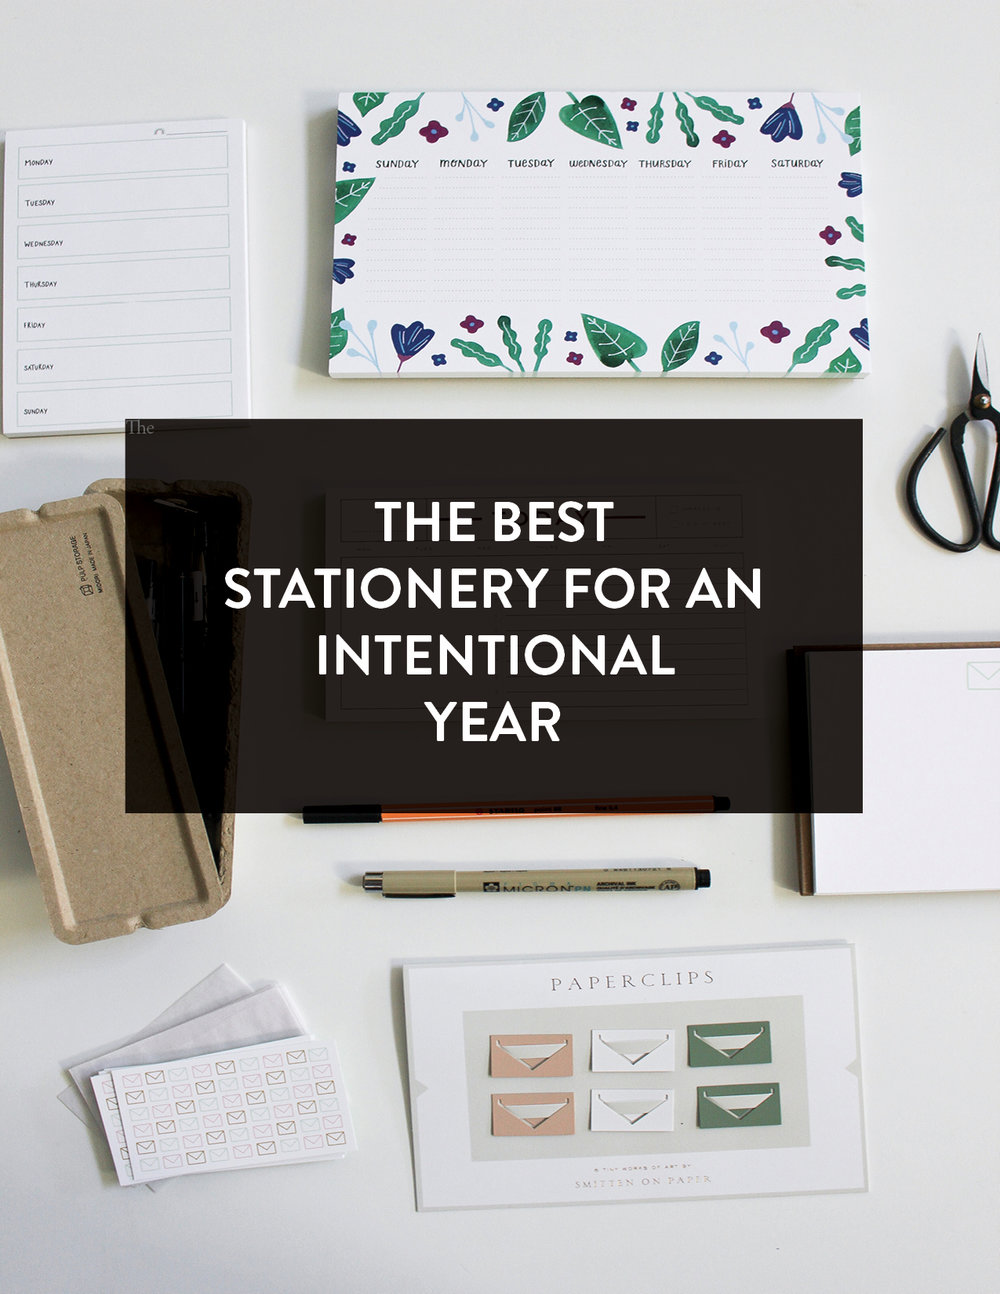 papercraftpantry-blog-roundup-best-stationery-for-an-intentional-year.jpg